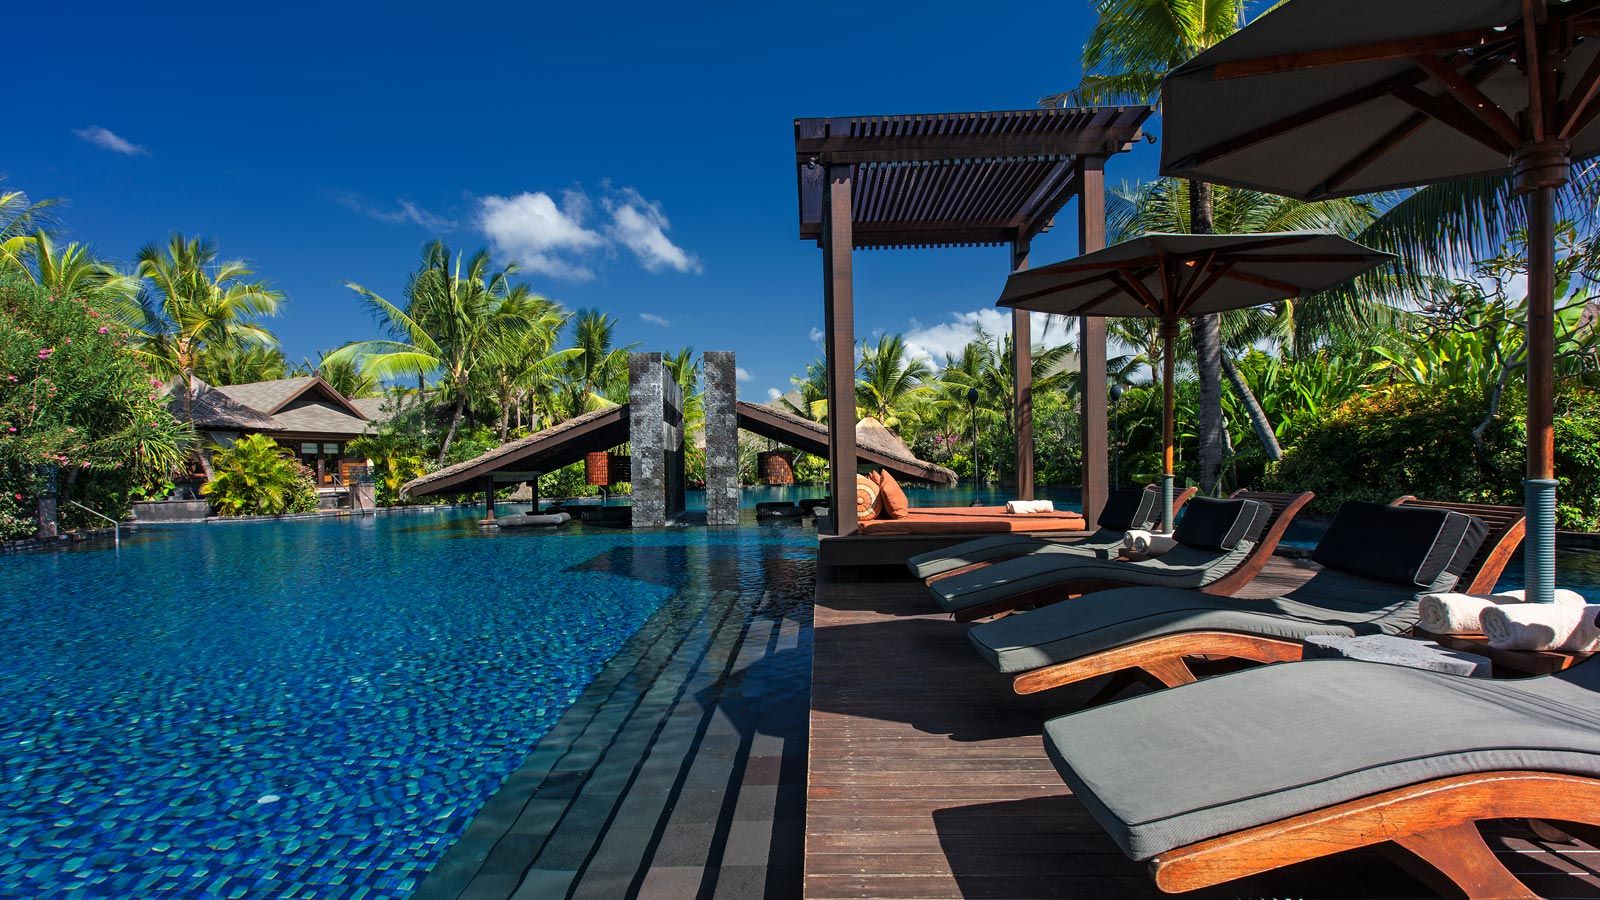 Swimmable Lagoon at The St. Regis Bali Resort